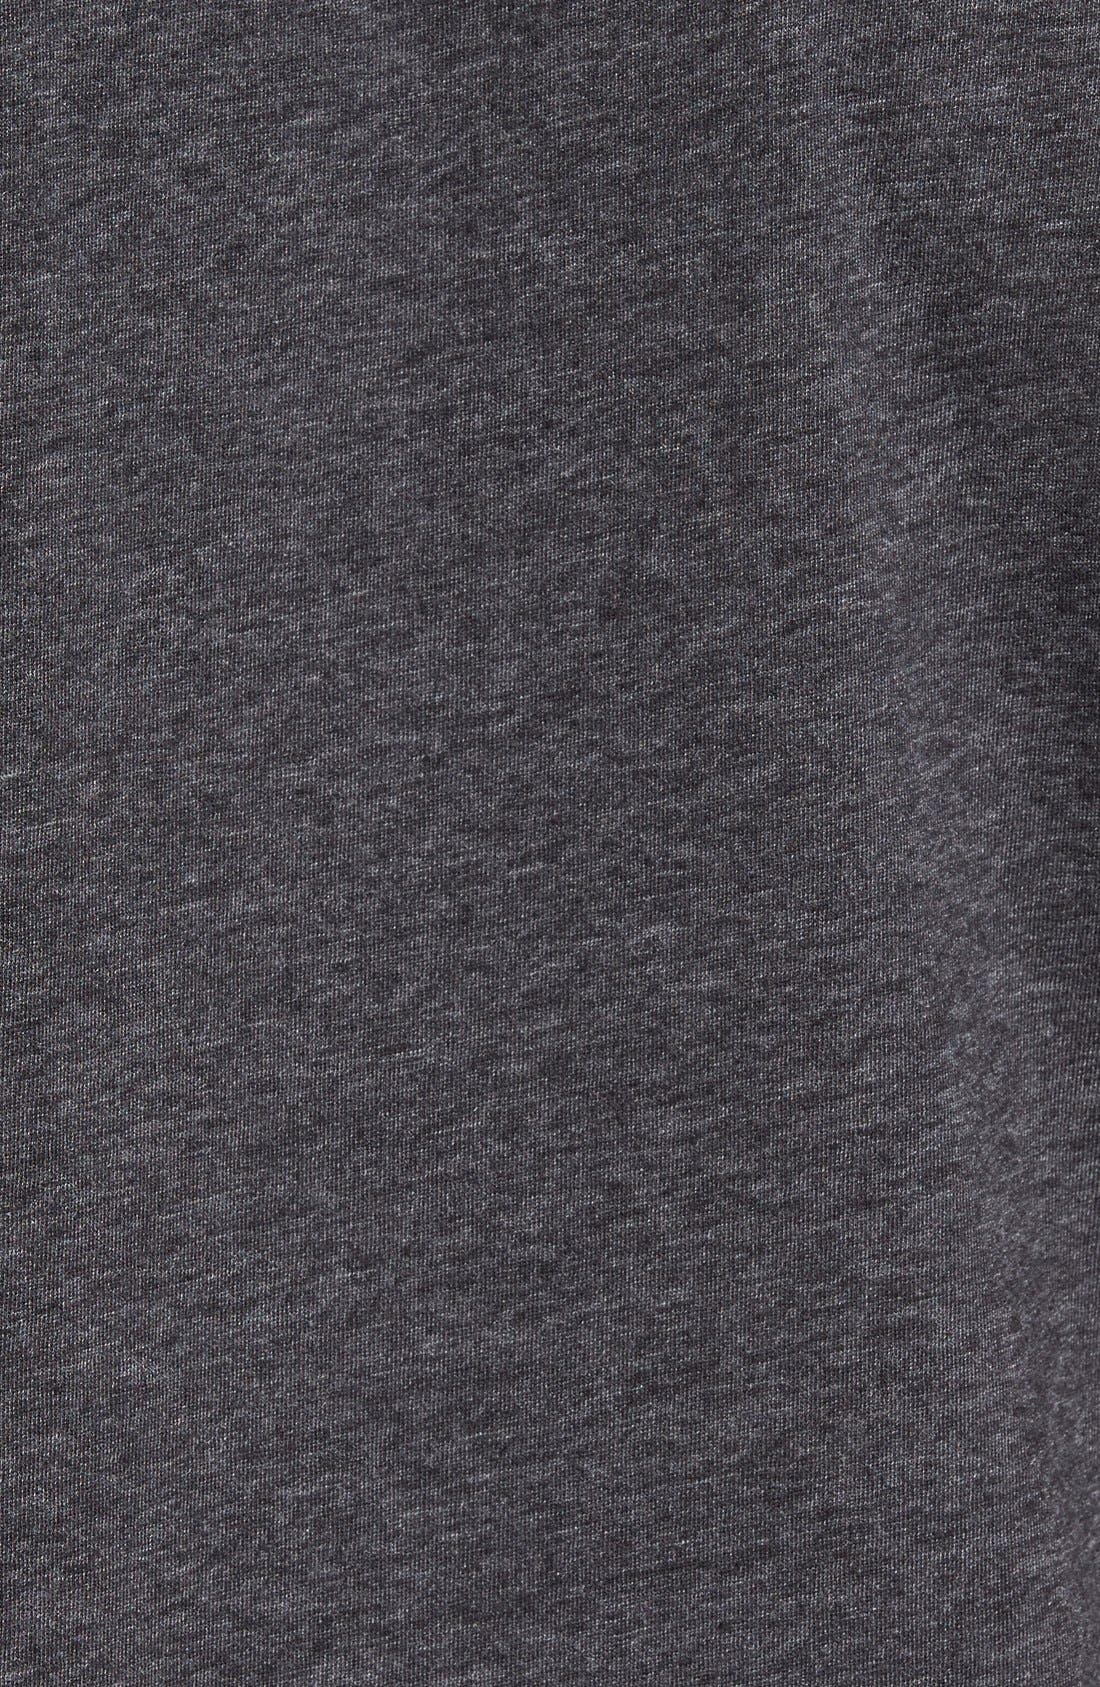 Recycled Cotton Blend T-Shirt,                             Alternate thumbnail 5, color,                             001